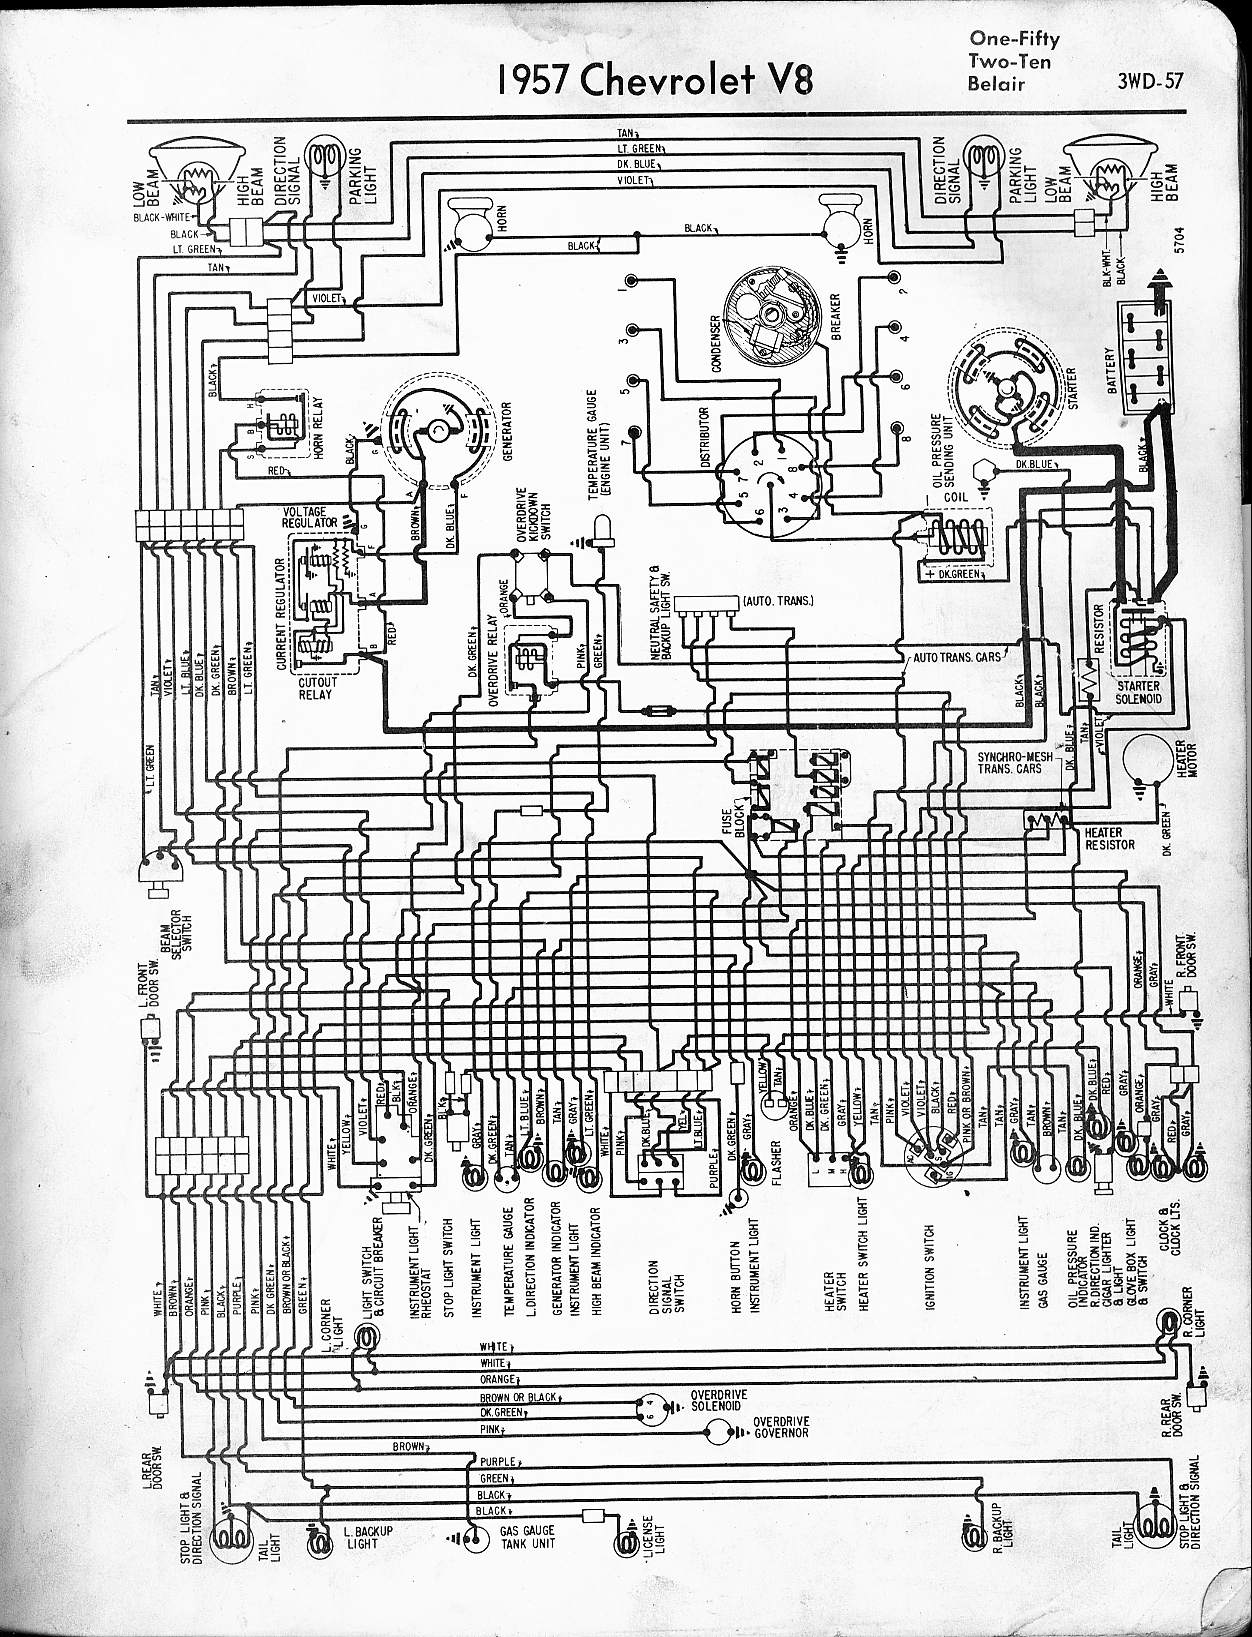 MWireChev57_3WD 057 1955 chevy wiring diagram 1955 pontiac wiring diagram \u2022 free 57 Chevy Wiring Diagram at panicattacktreatment.co